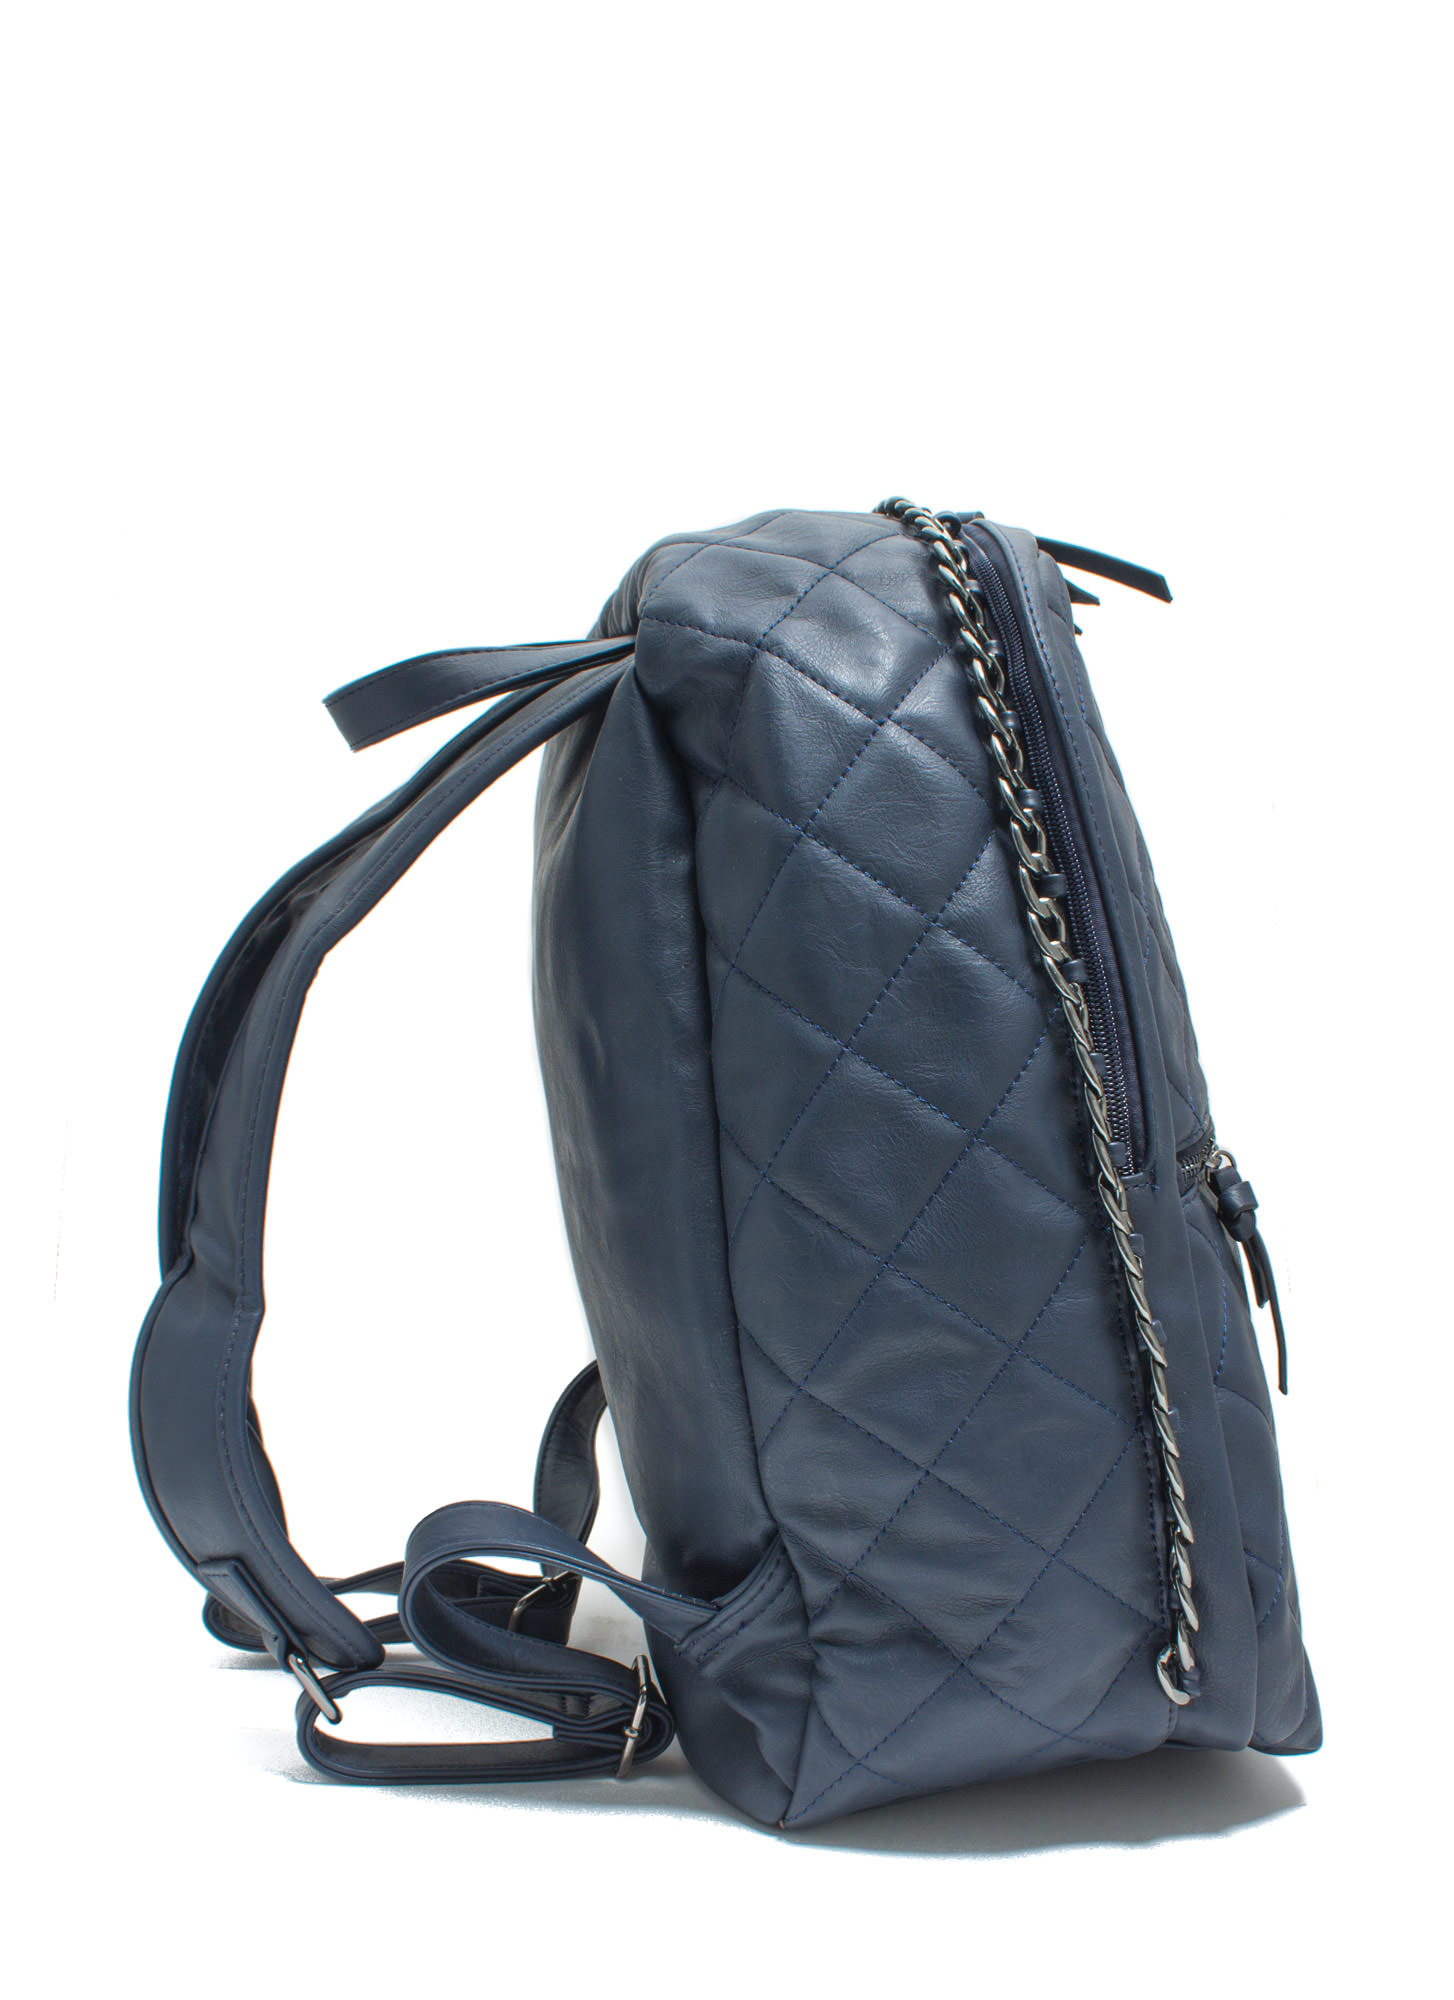 Quilty Conscience Faux Leather Backpack NAVY